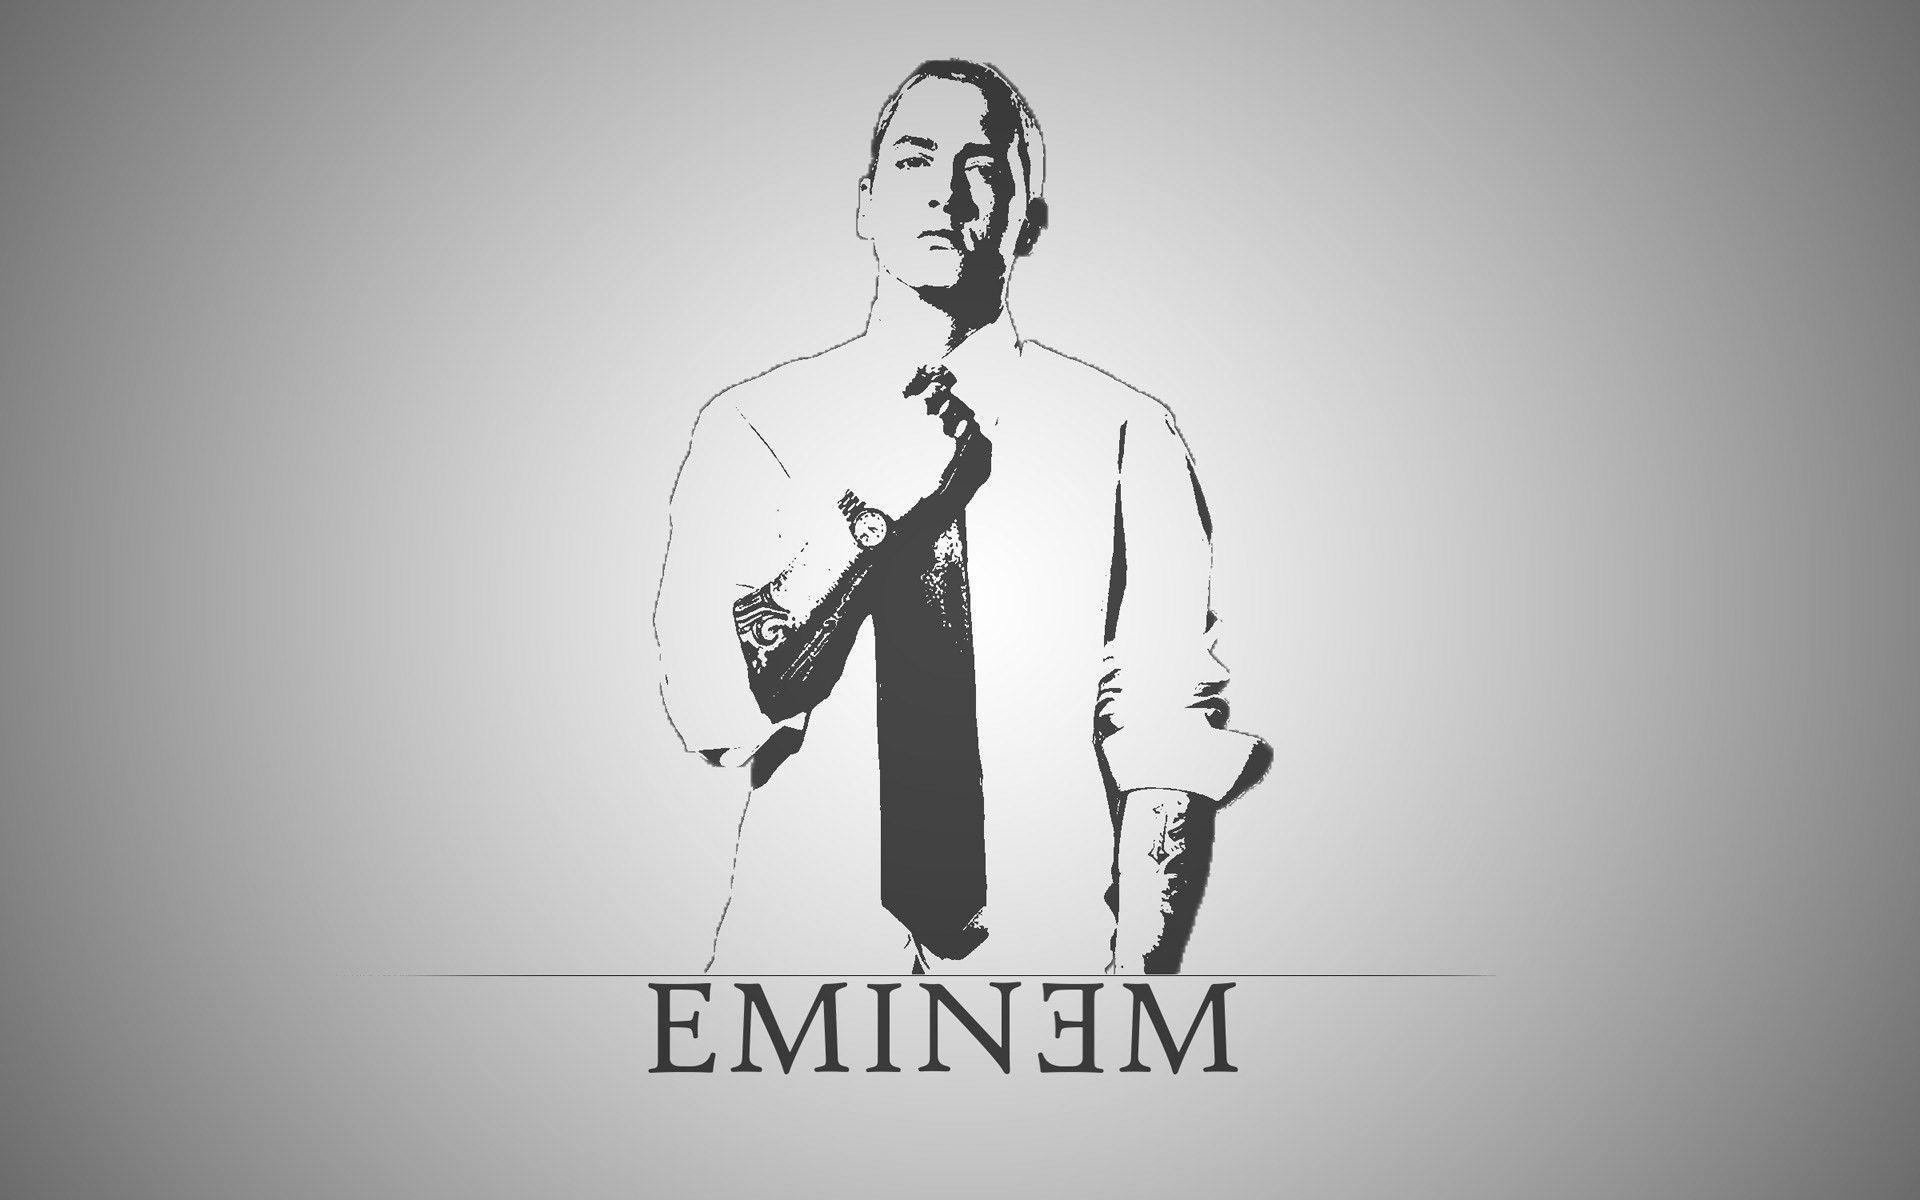 Eminem Wallpapers - Full HD wallpaper search